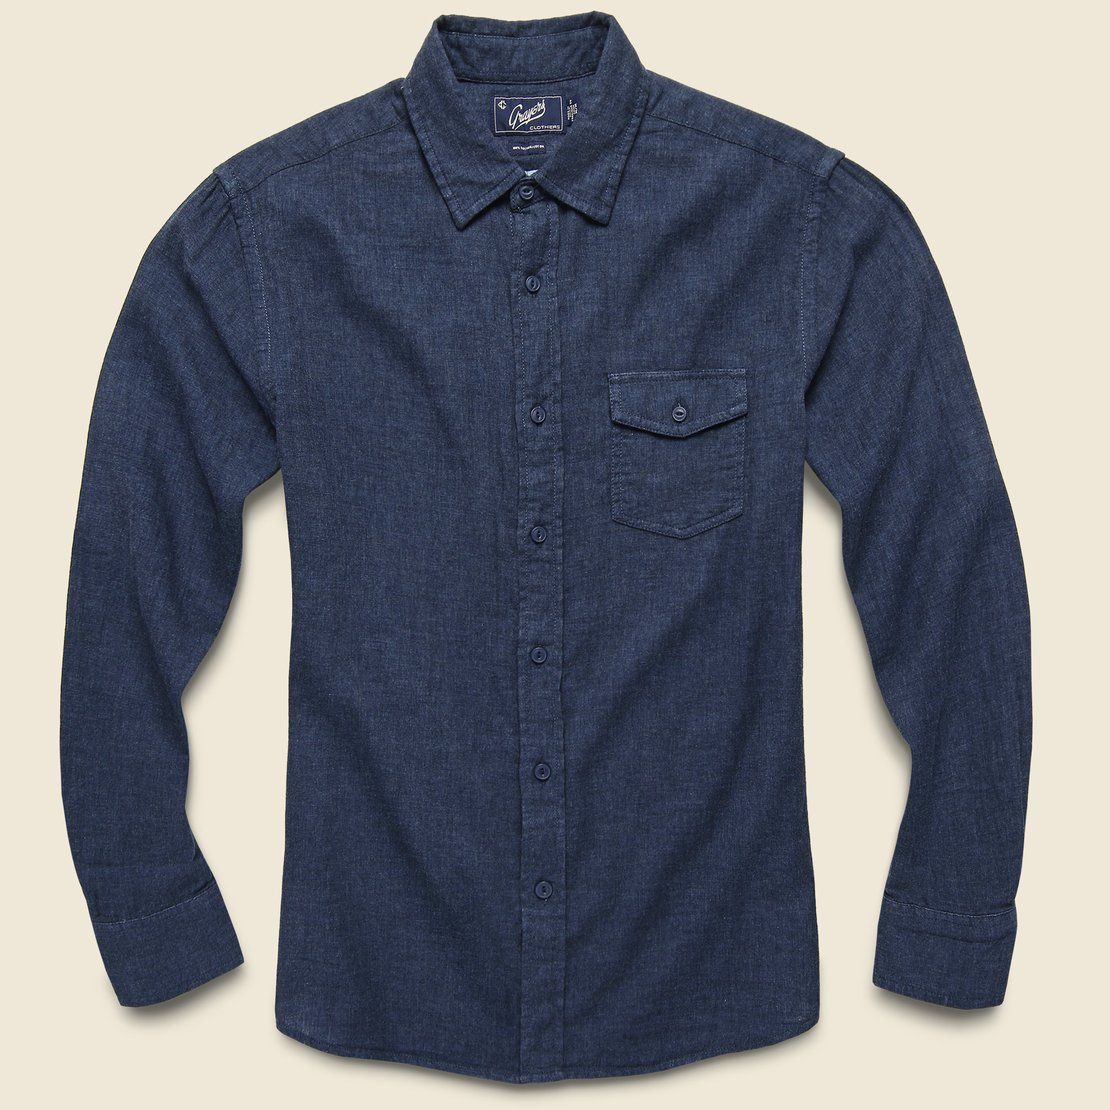 Grayers Hattox Double Cloth Shirt - Navy Heather